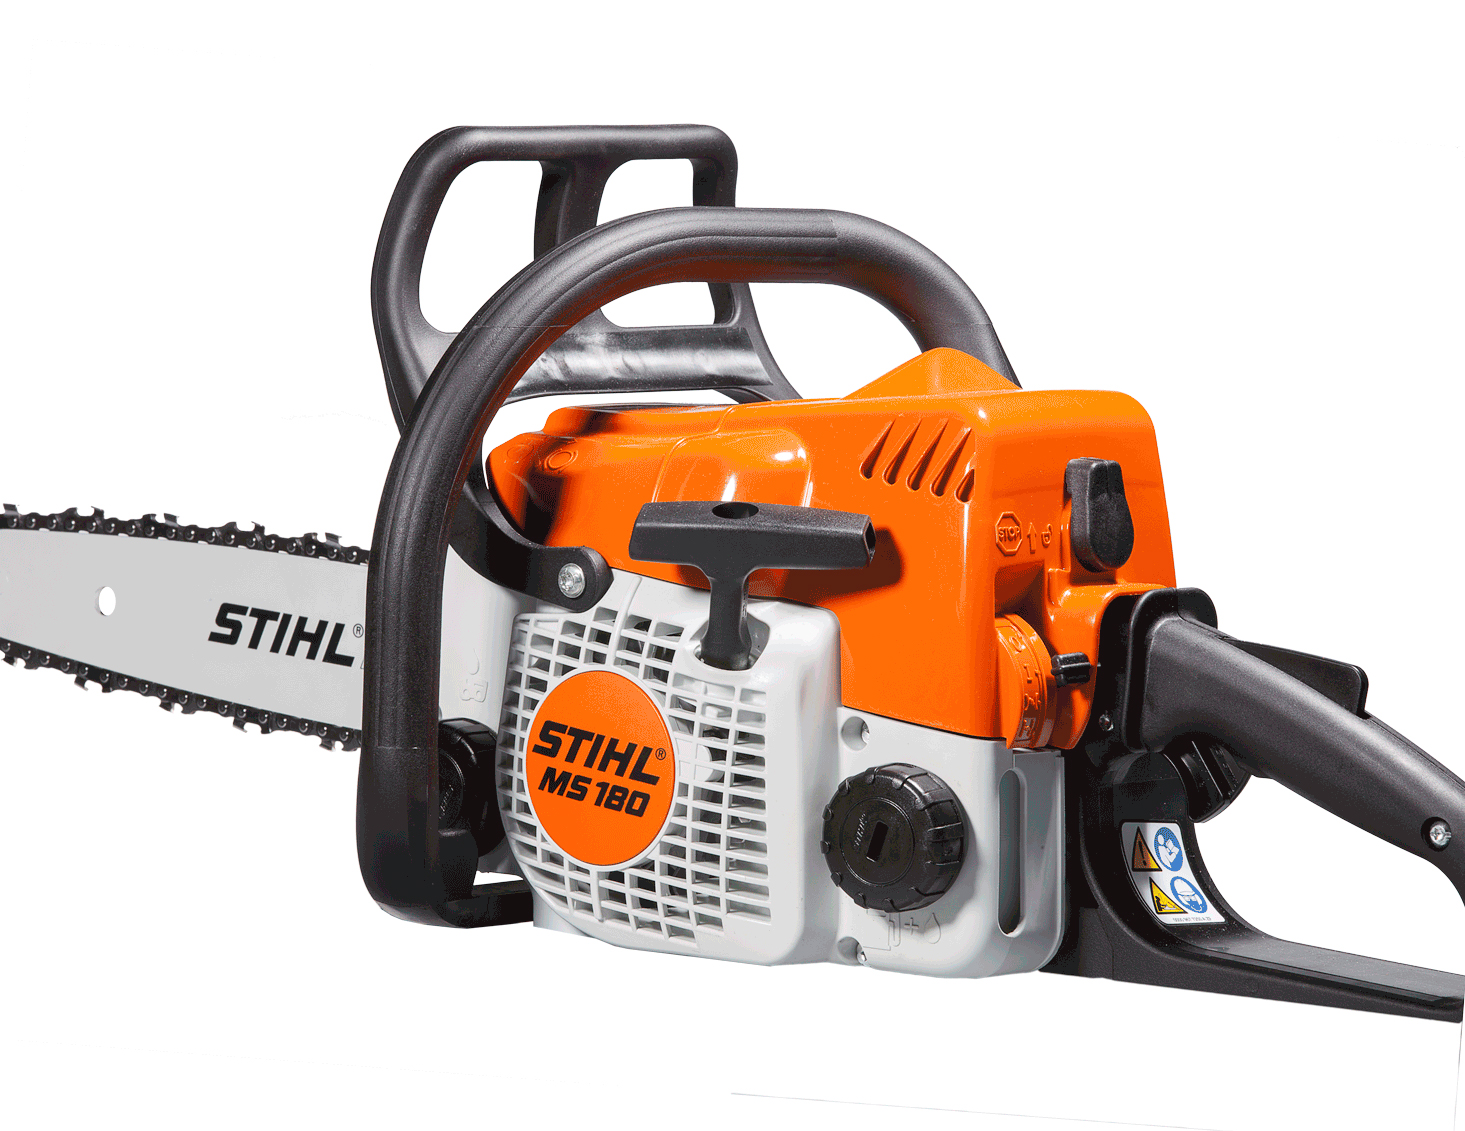 Stihl-[9613], Strainrite, Robertson, Engineering, product, photography